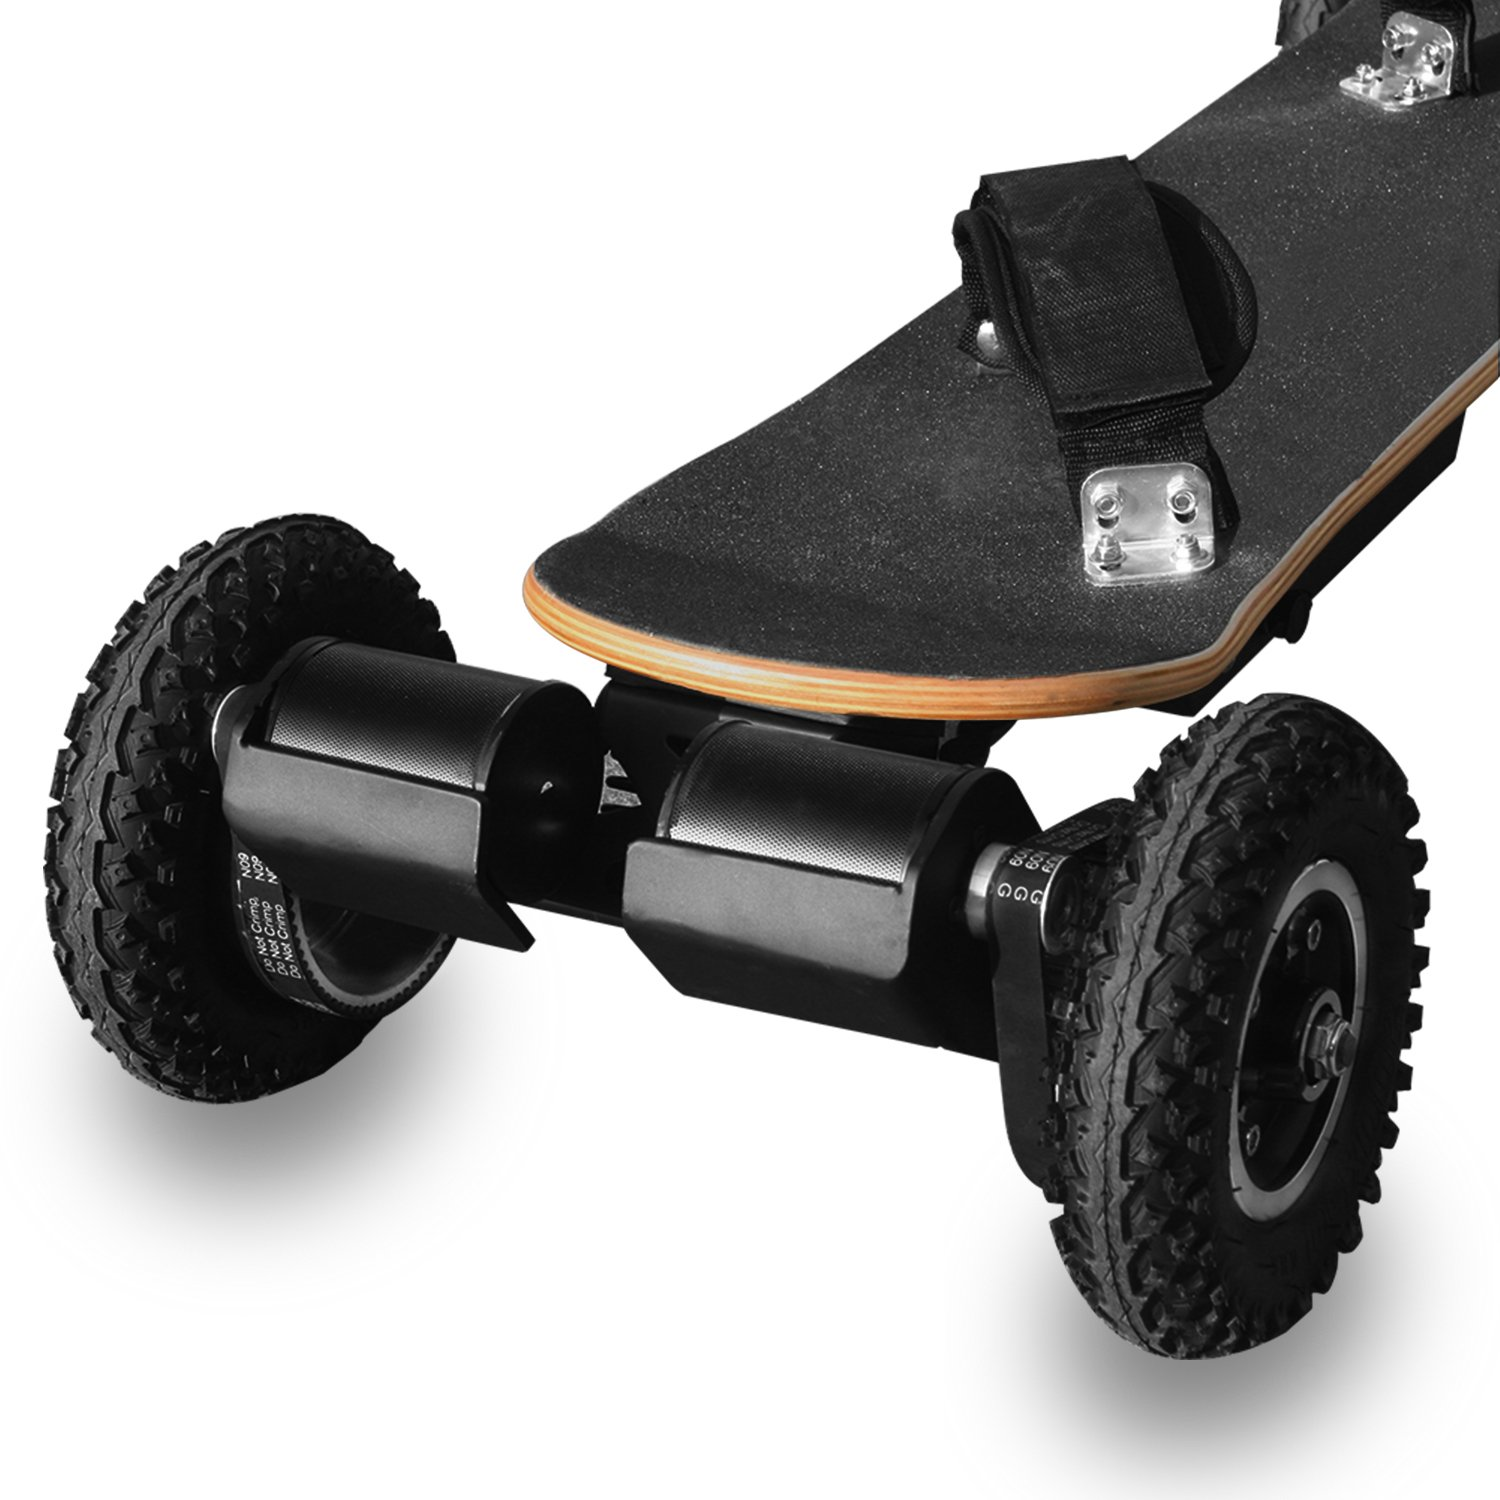 Off Road Pro Skateboard, Dubang Skateboard Support High Speed with Solid Design by Dubang